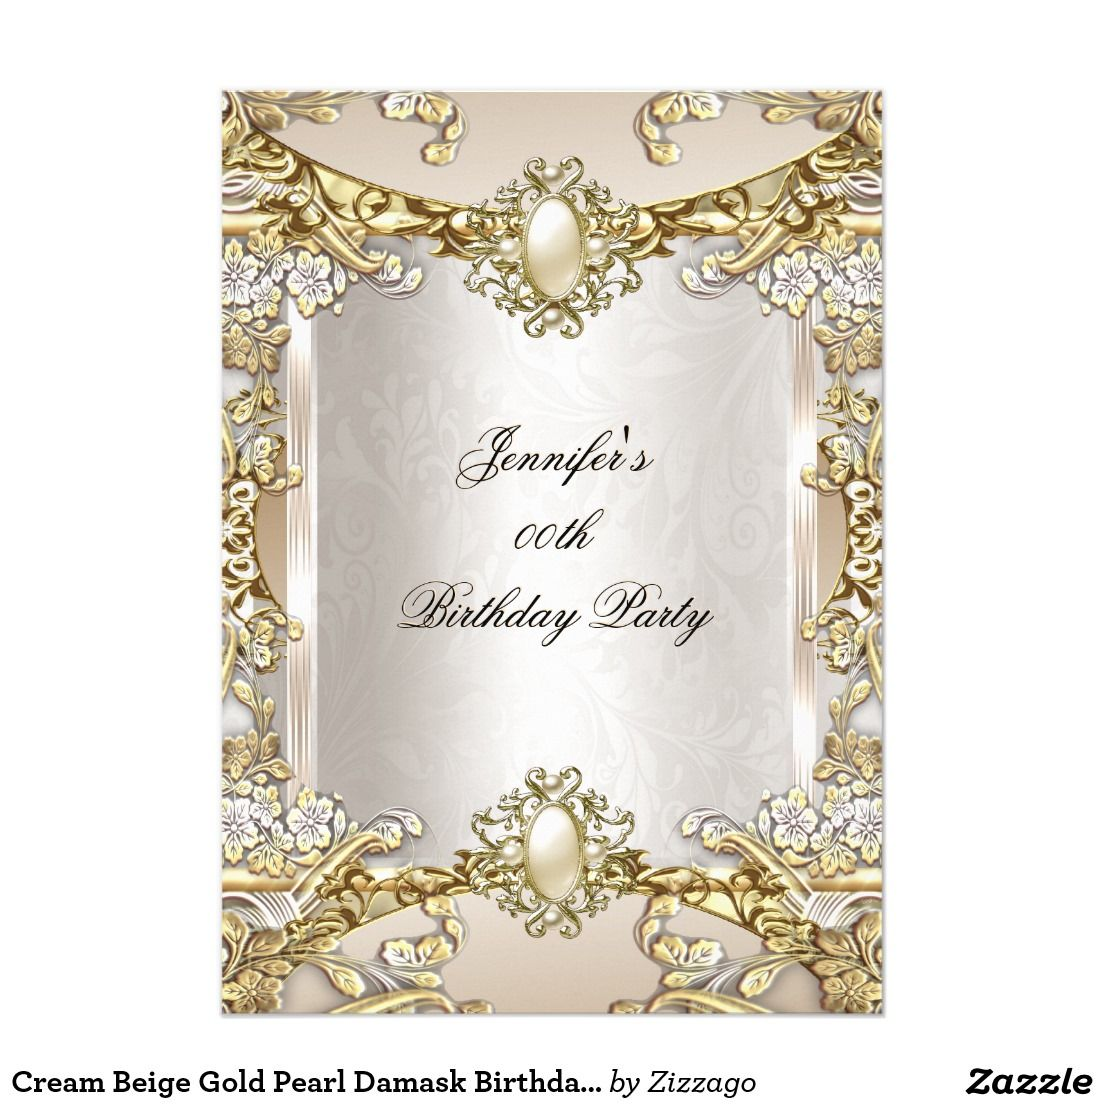 Cream Beige Gold Pearl Damask Birthday Party 2 Card | Gold pearl ...